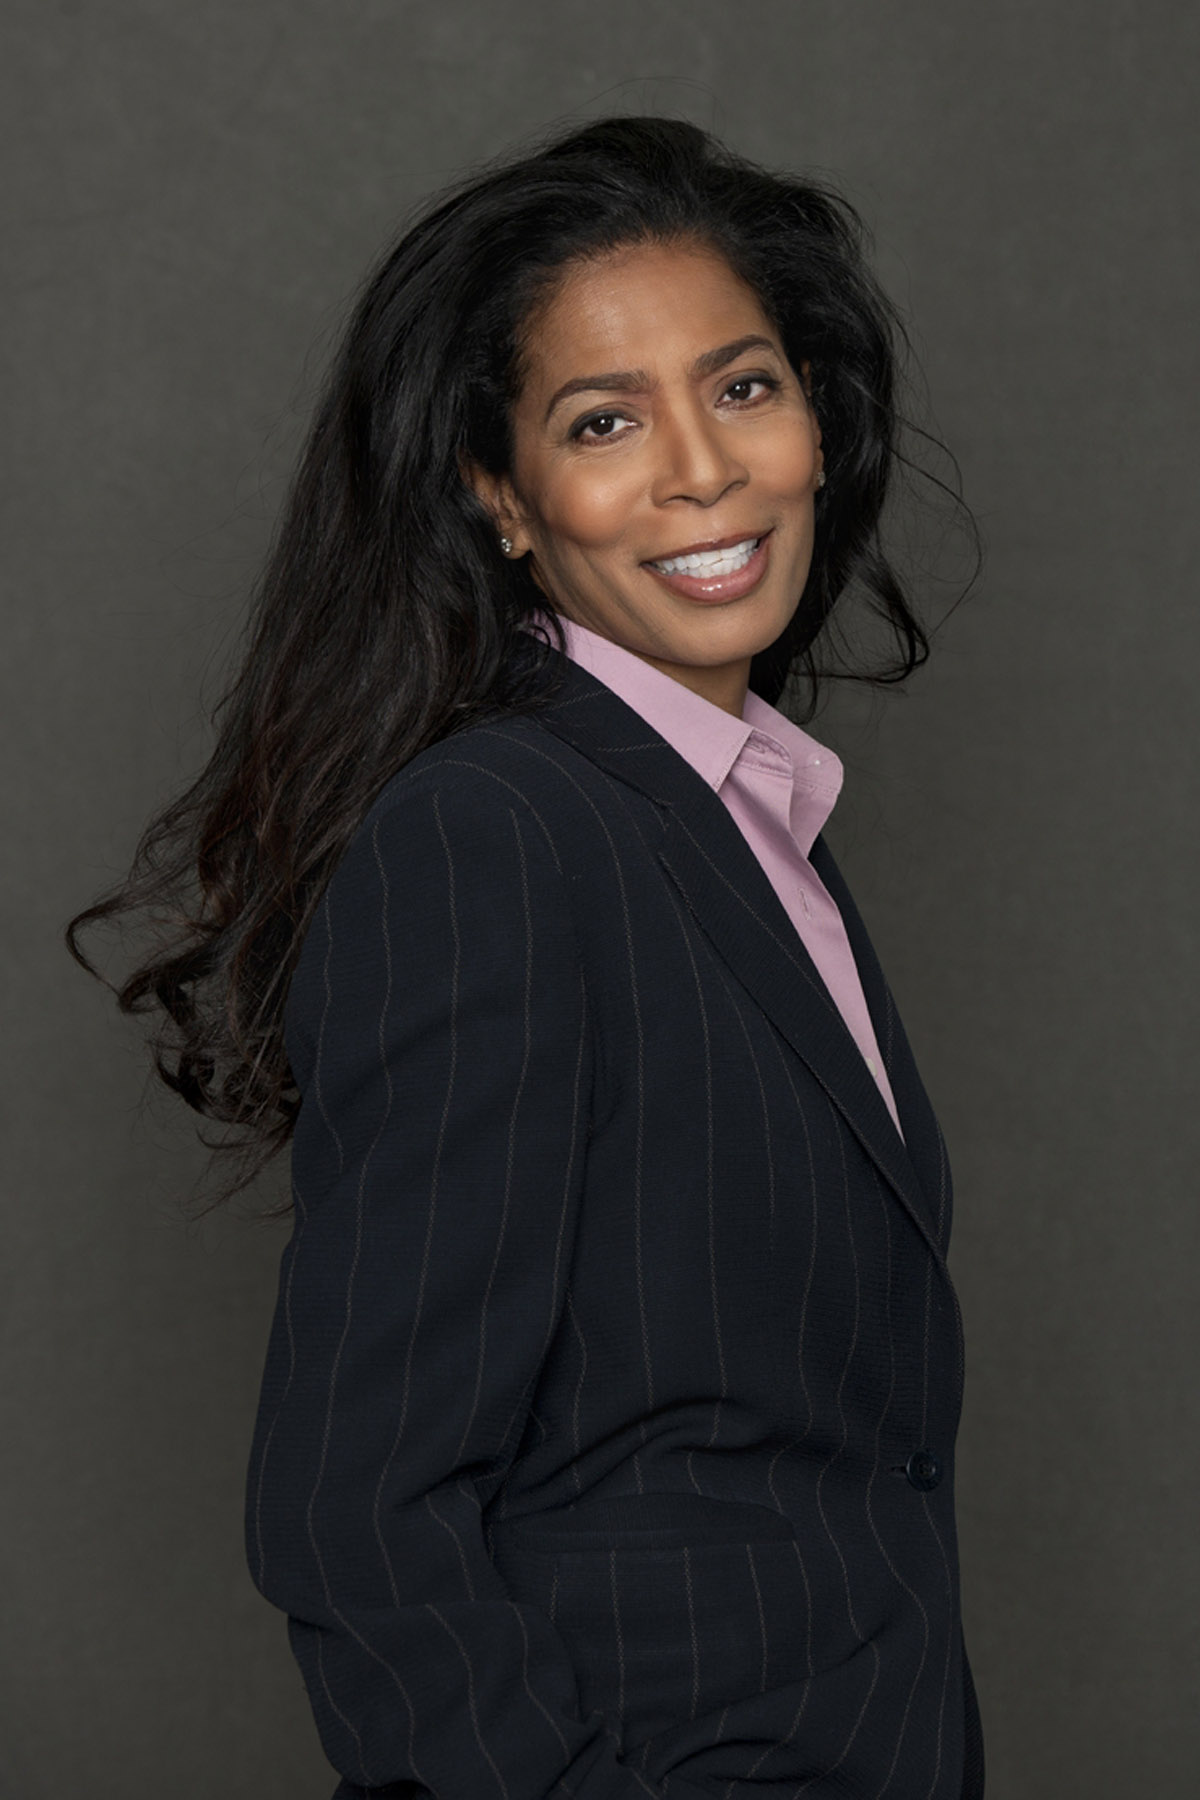 """Judy Smith, the real-life inspiration behind ABC's hit political thriller series """"Scandal"""" starring Kerry Washington, will headline this year's Women's Week events at the U March 9 at noon in the Union Ballroom."""